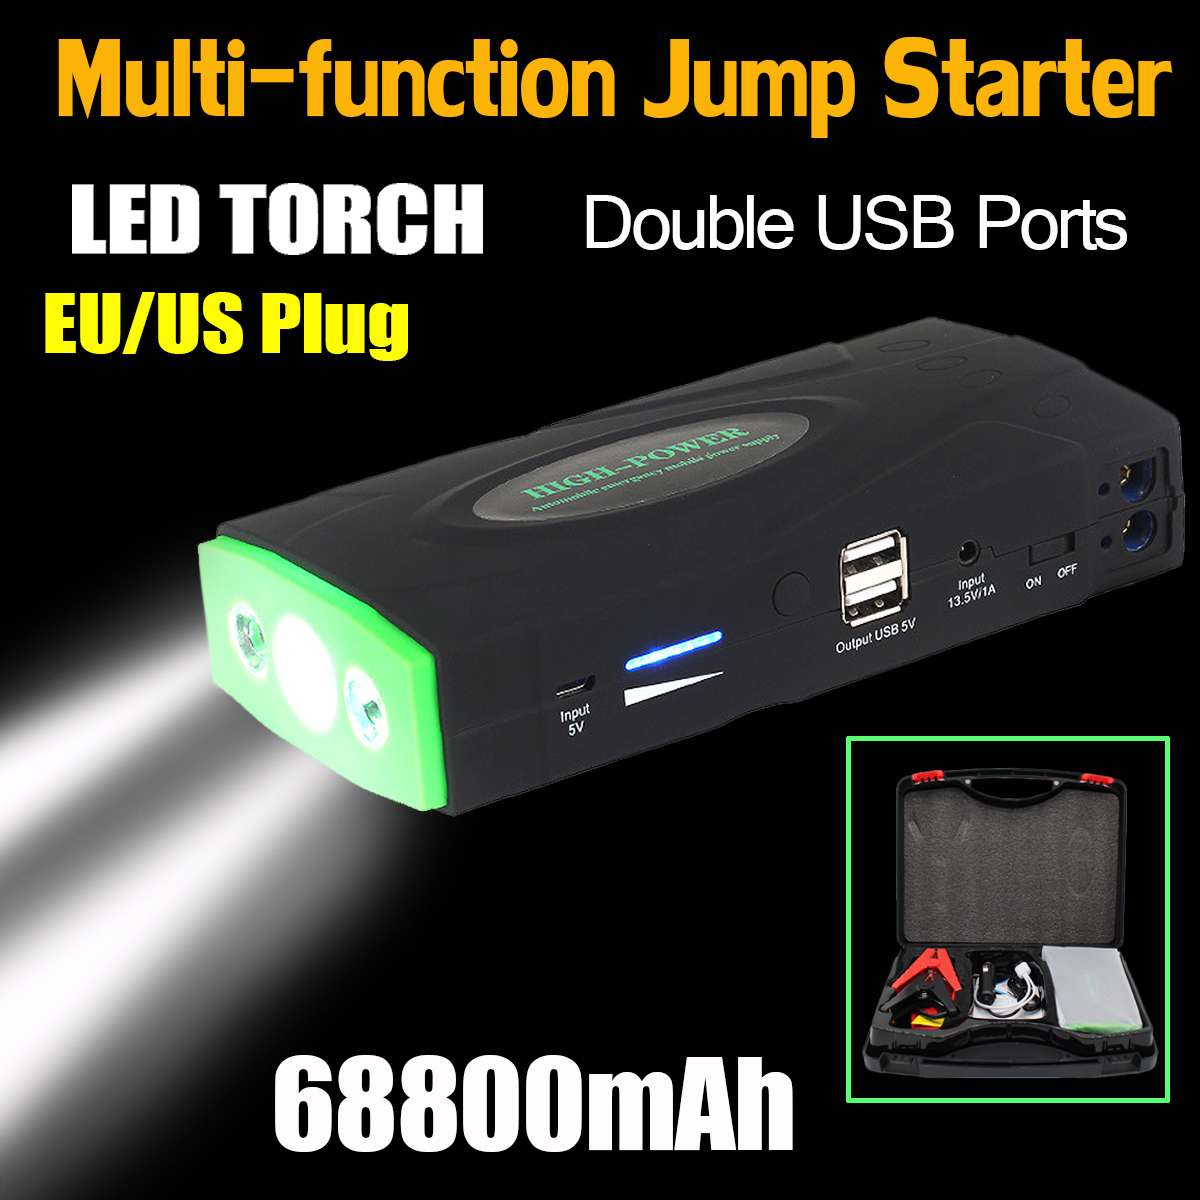 68800mAh 12V 600A LED Multifunction Jump Starter Portable Car Battery Booster Charger Booster Power Bank Starting Device image